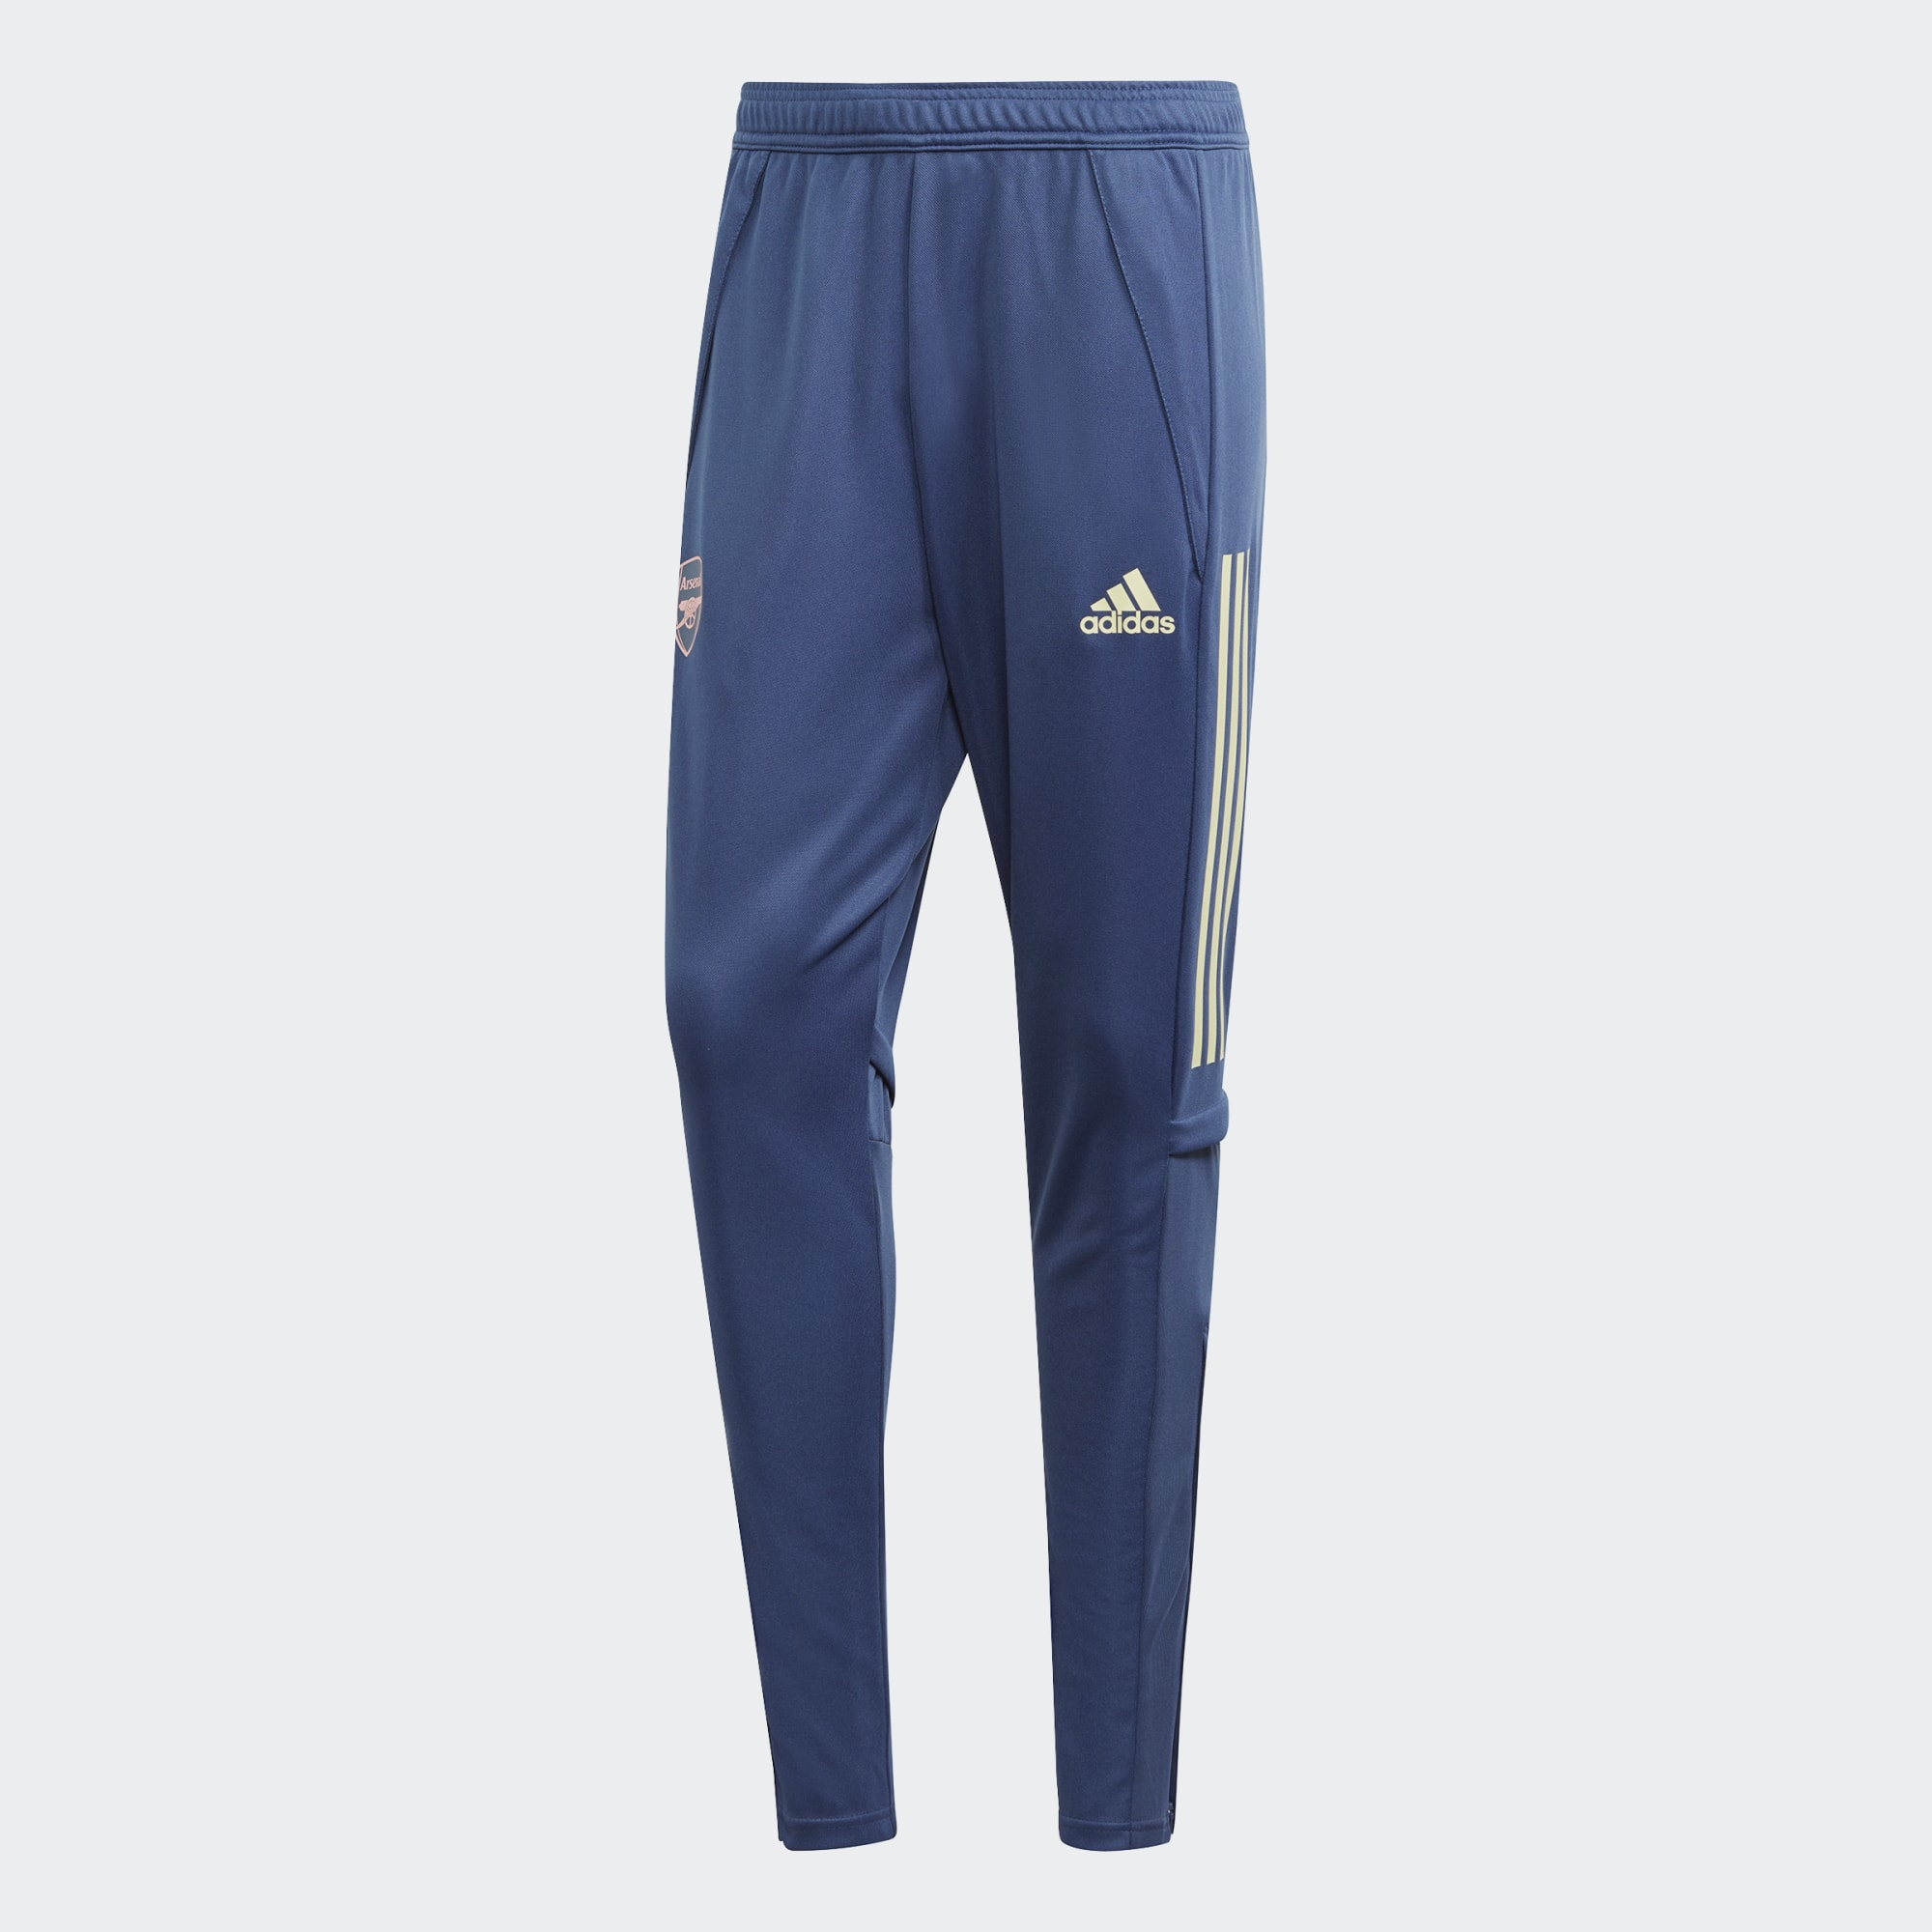 Mens Adidas Arsenal Pants